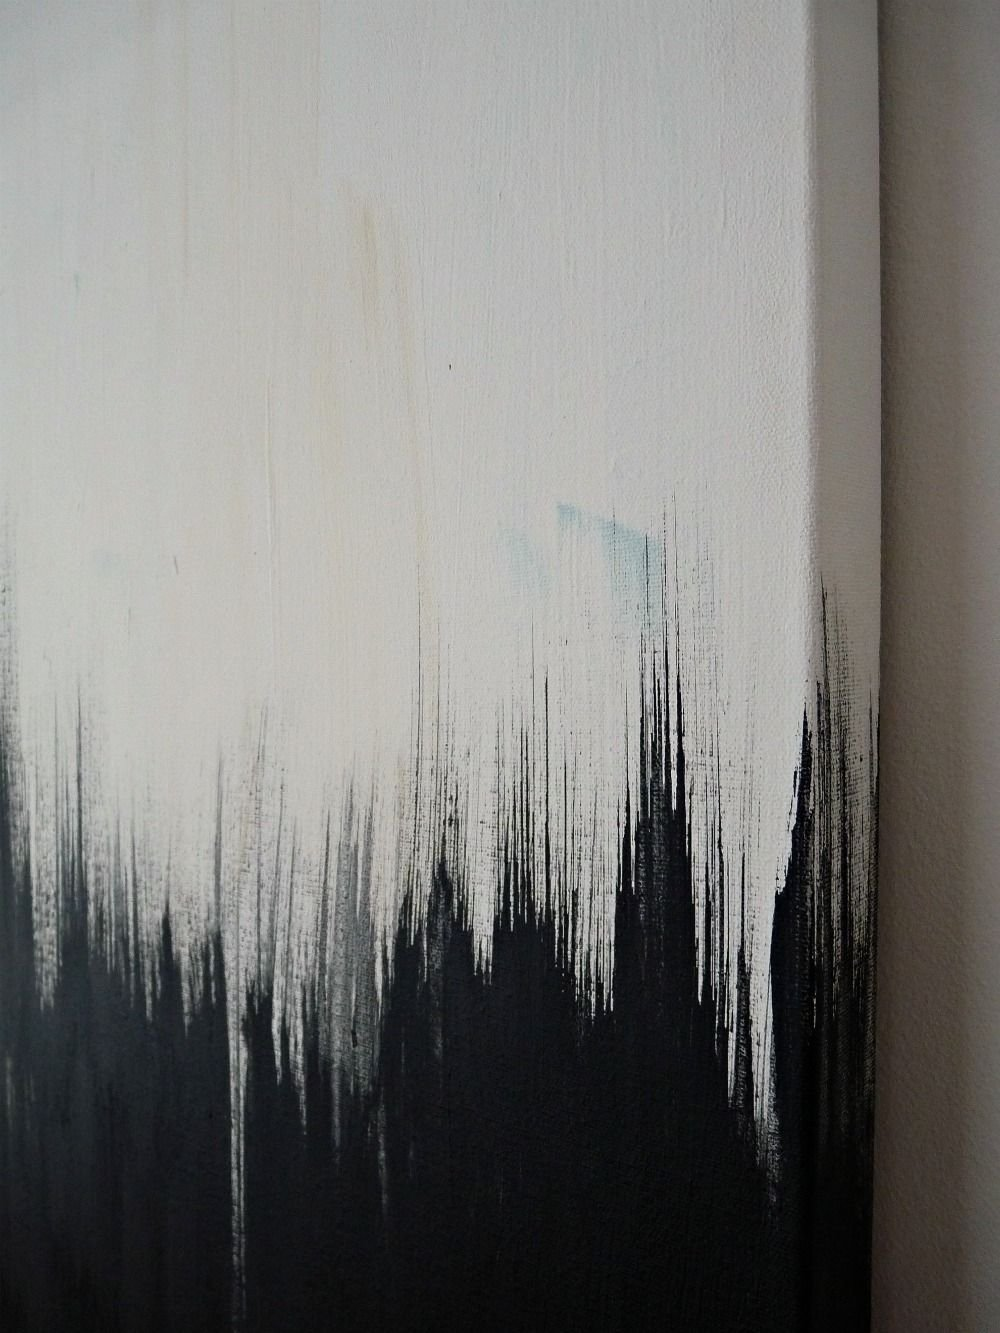 10 Ideal Black And White Painting Ideas simple but striking black white diy abstract painting diy art 2020